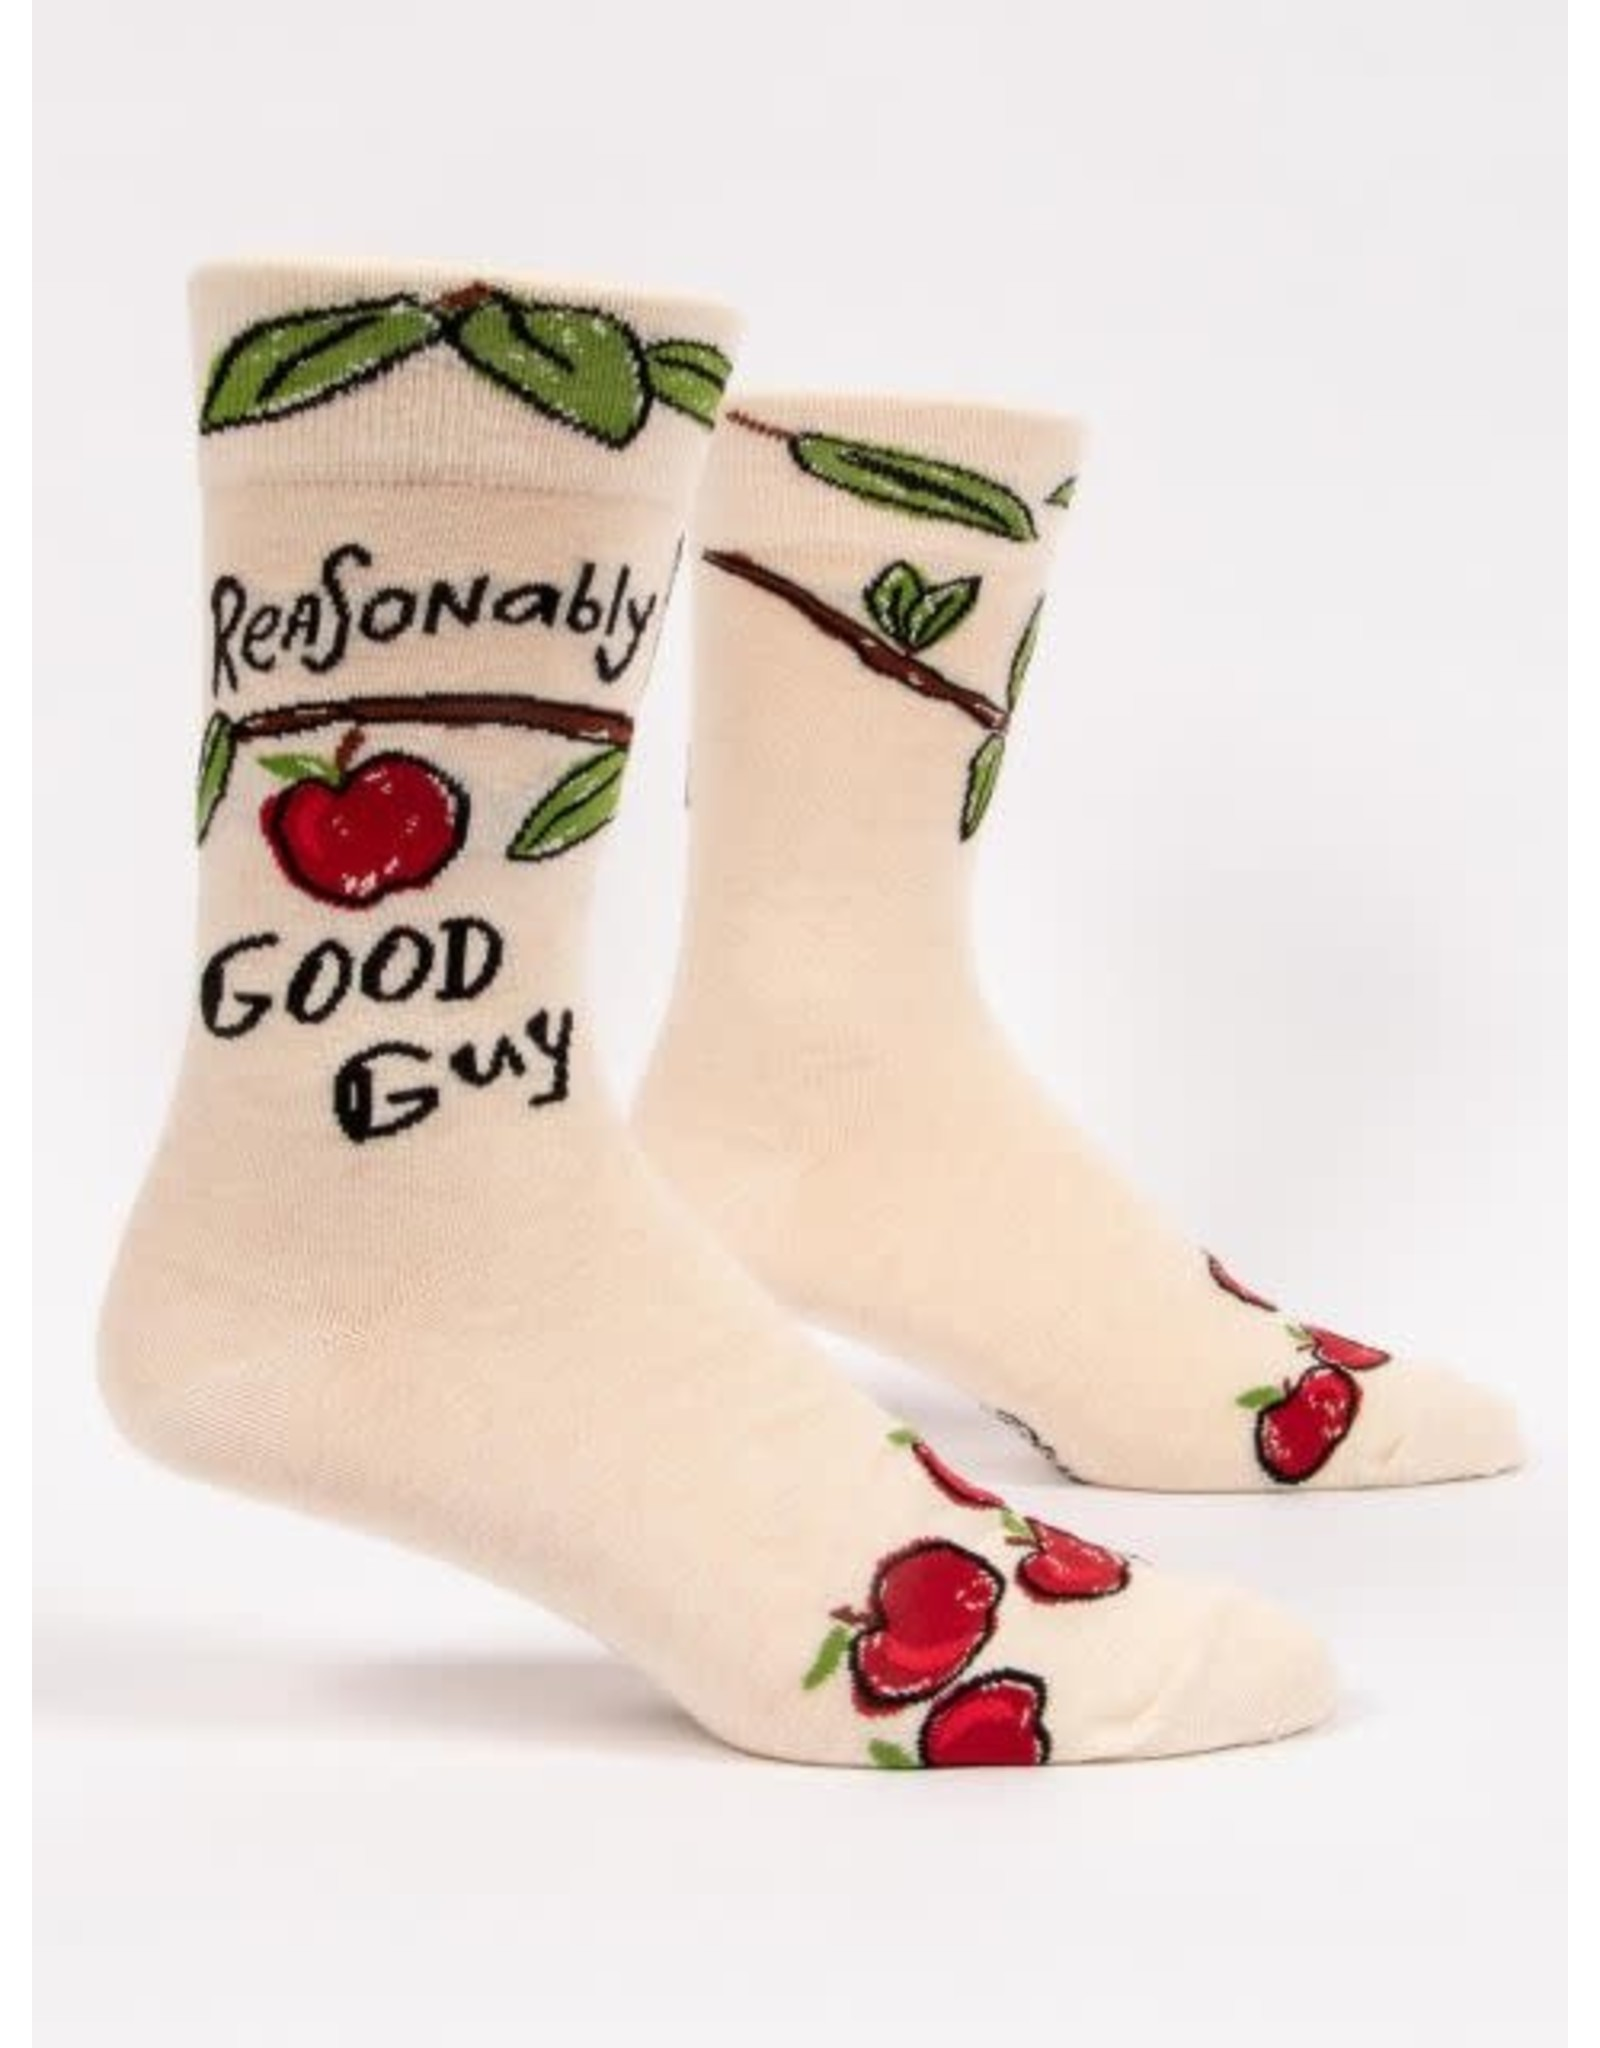 Socks (Mens)  - Reasonably Good Guy